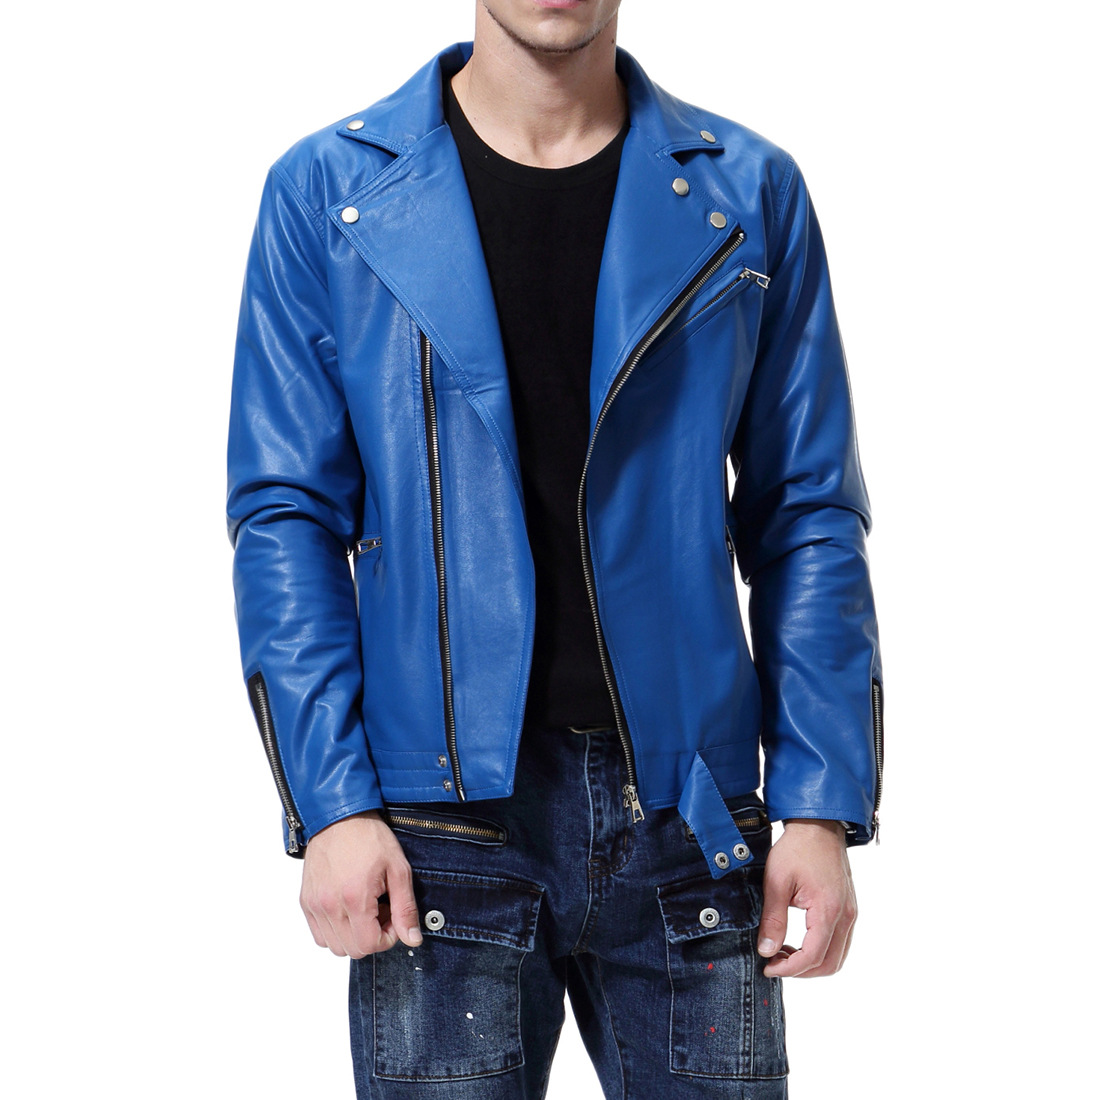 2019 Autumn New Style Men Locomotive Leather Coat Occident Fashion Large Size MEN'S Leather Jacket Y667